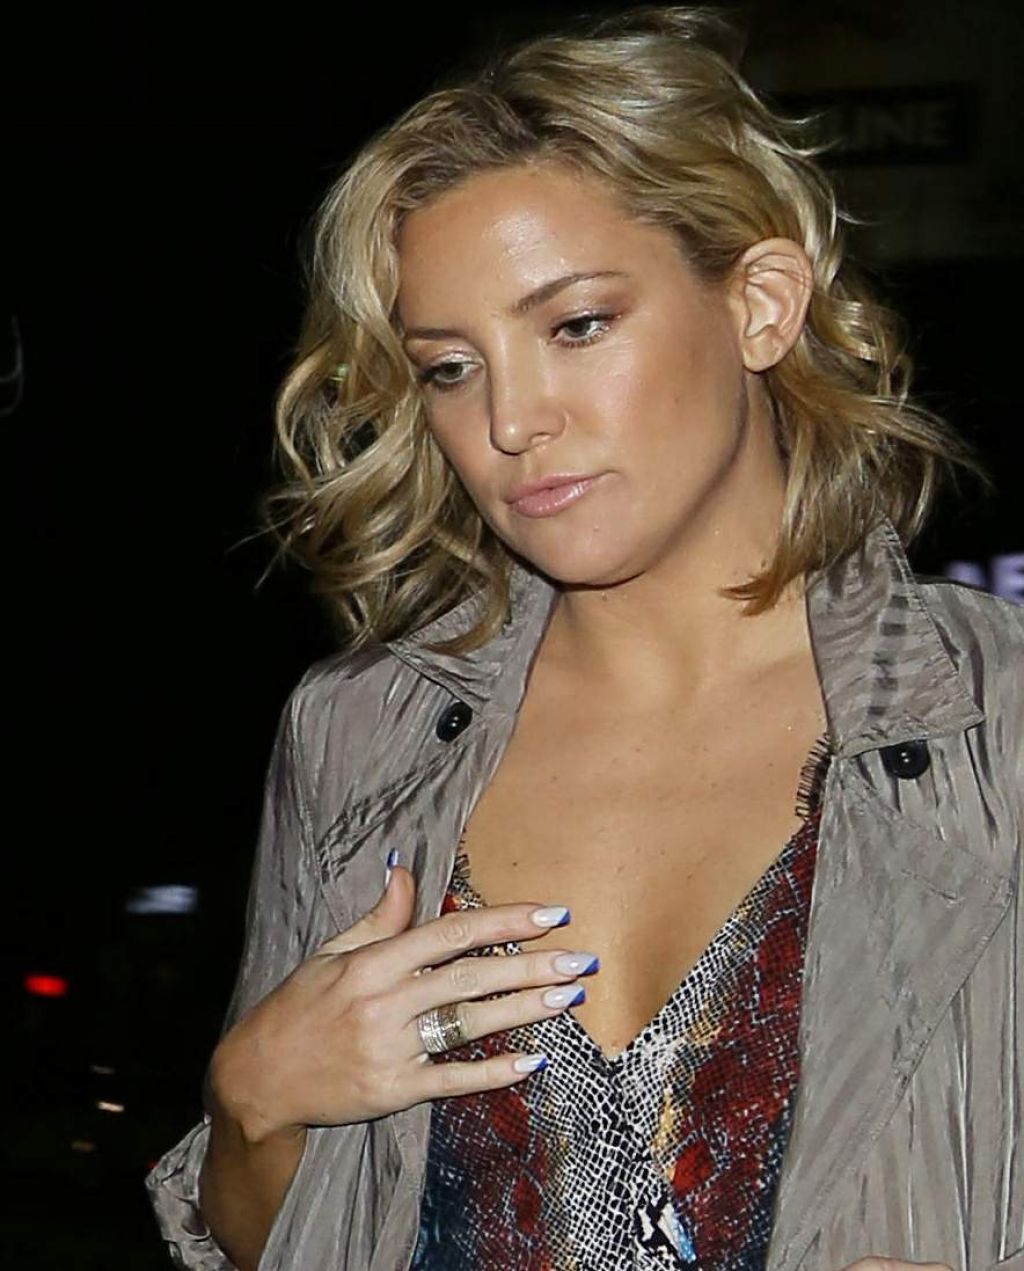 Kate Hudson Night Out Style - at Nice Guy in Hollywood 2/5 ... Kate Hudson